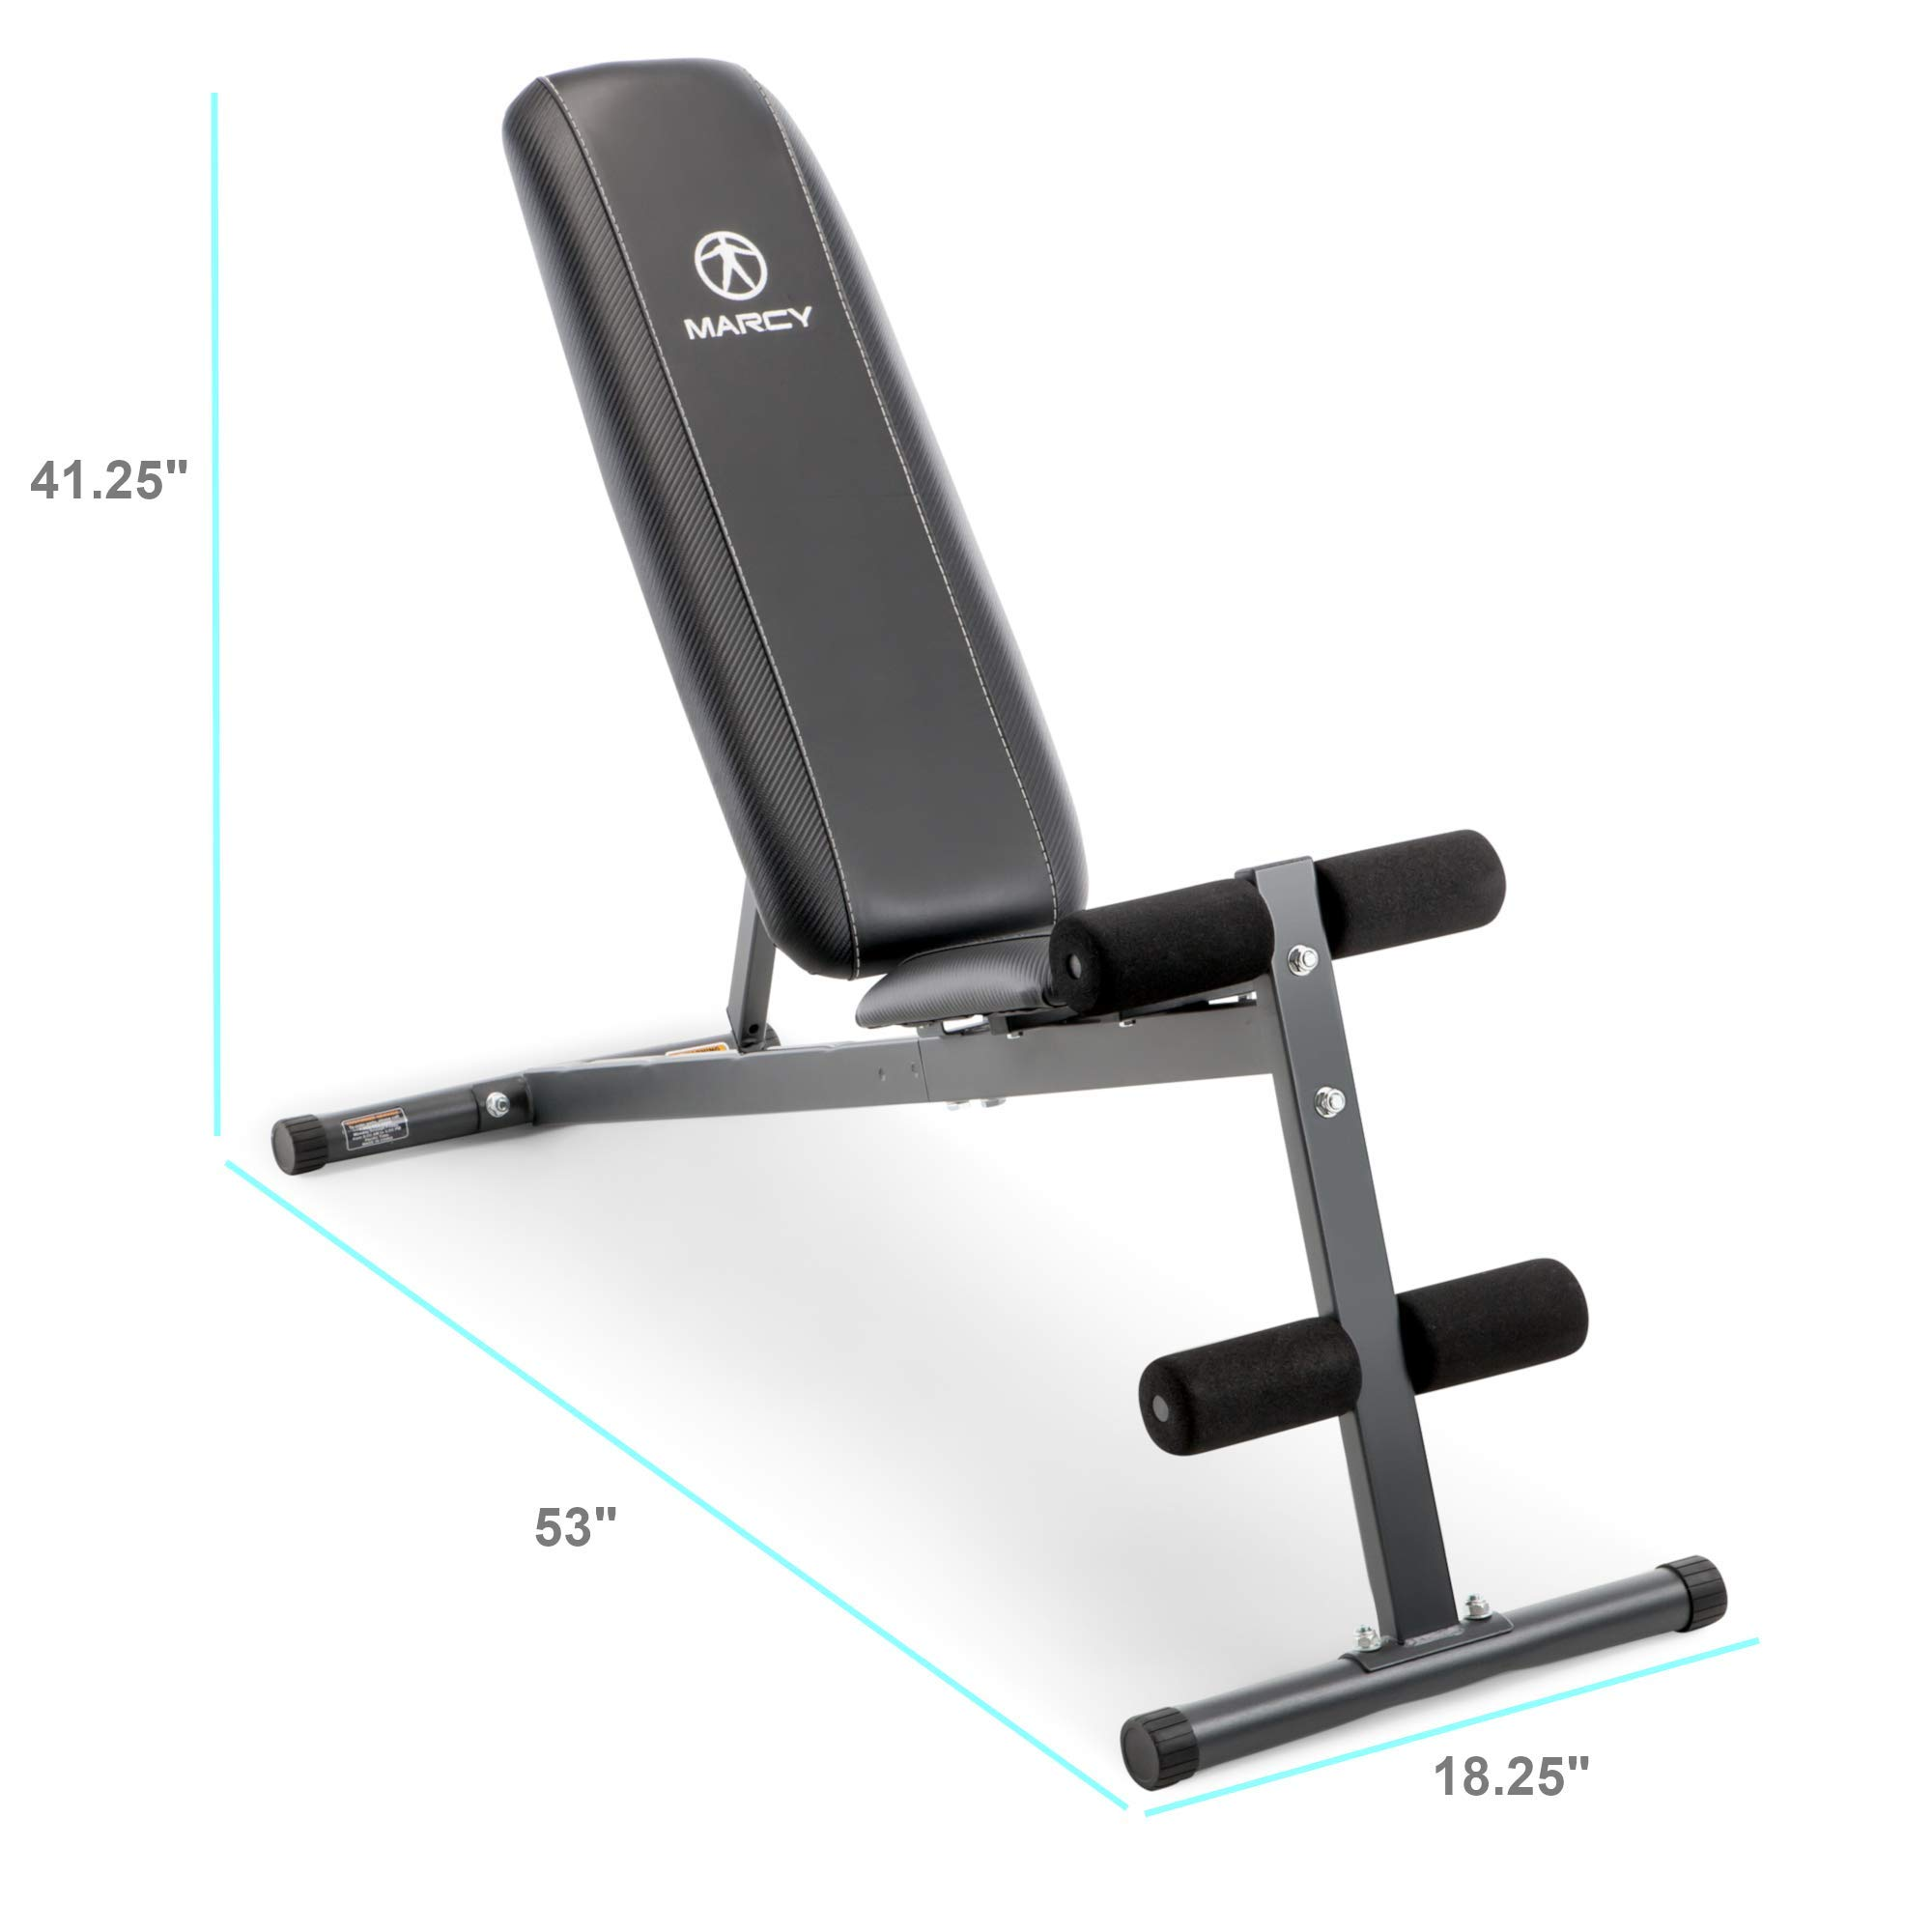 Marcy Exercise Utility Bench for Upright, Incline, Decline, and Flat Exercise SB-261W (Renewed)